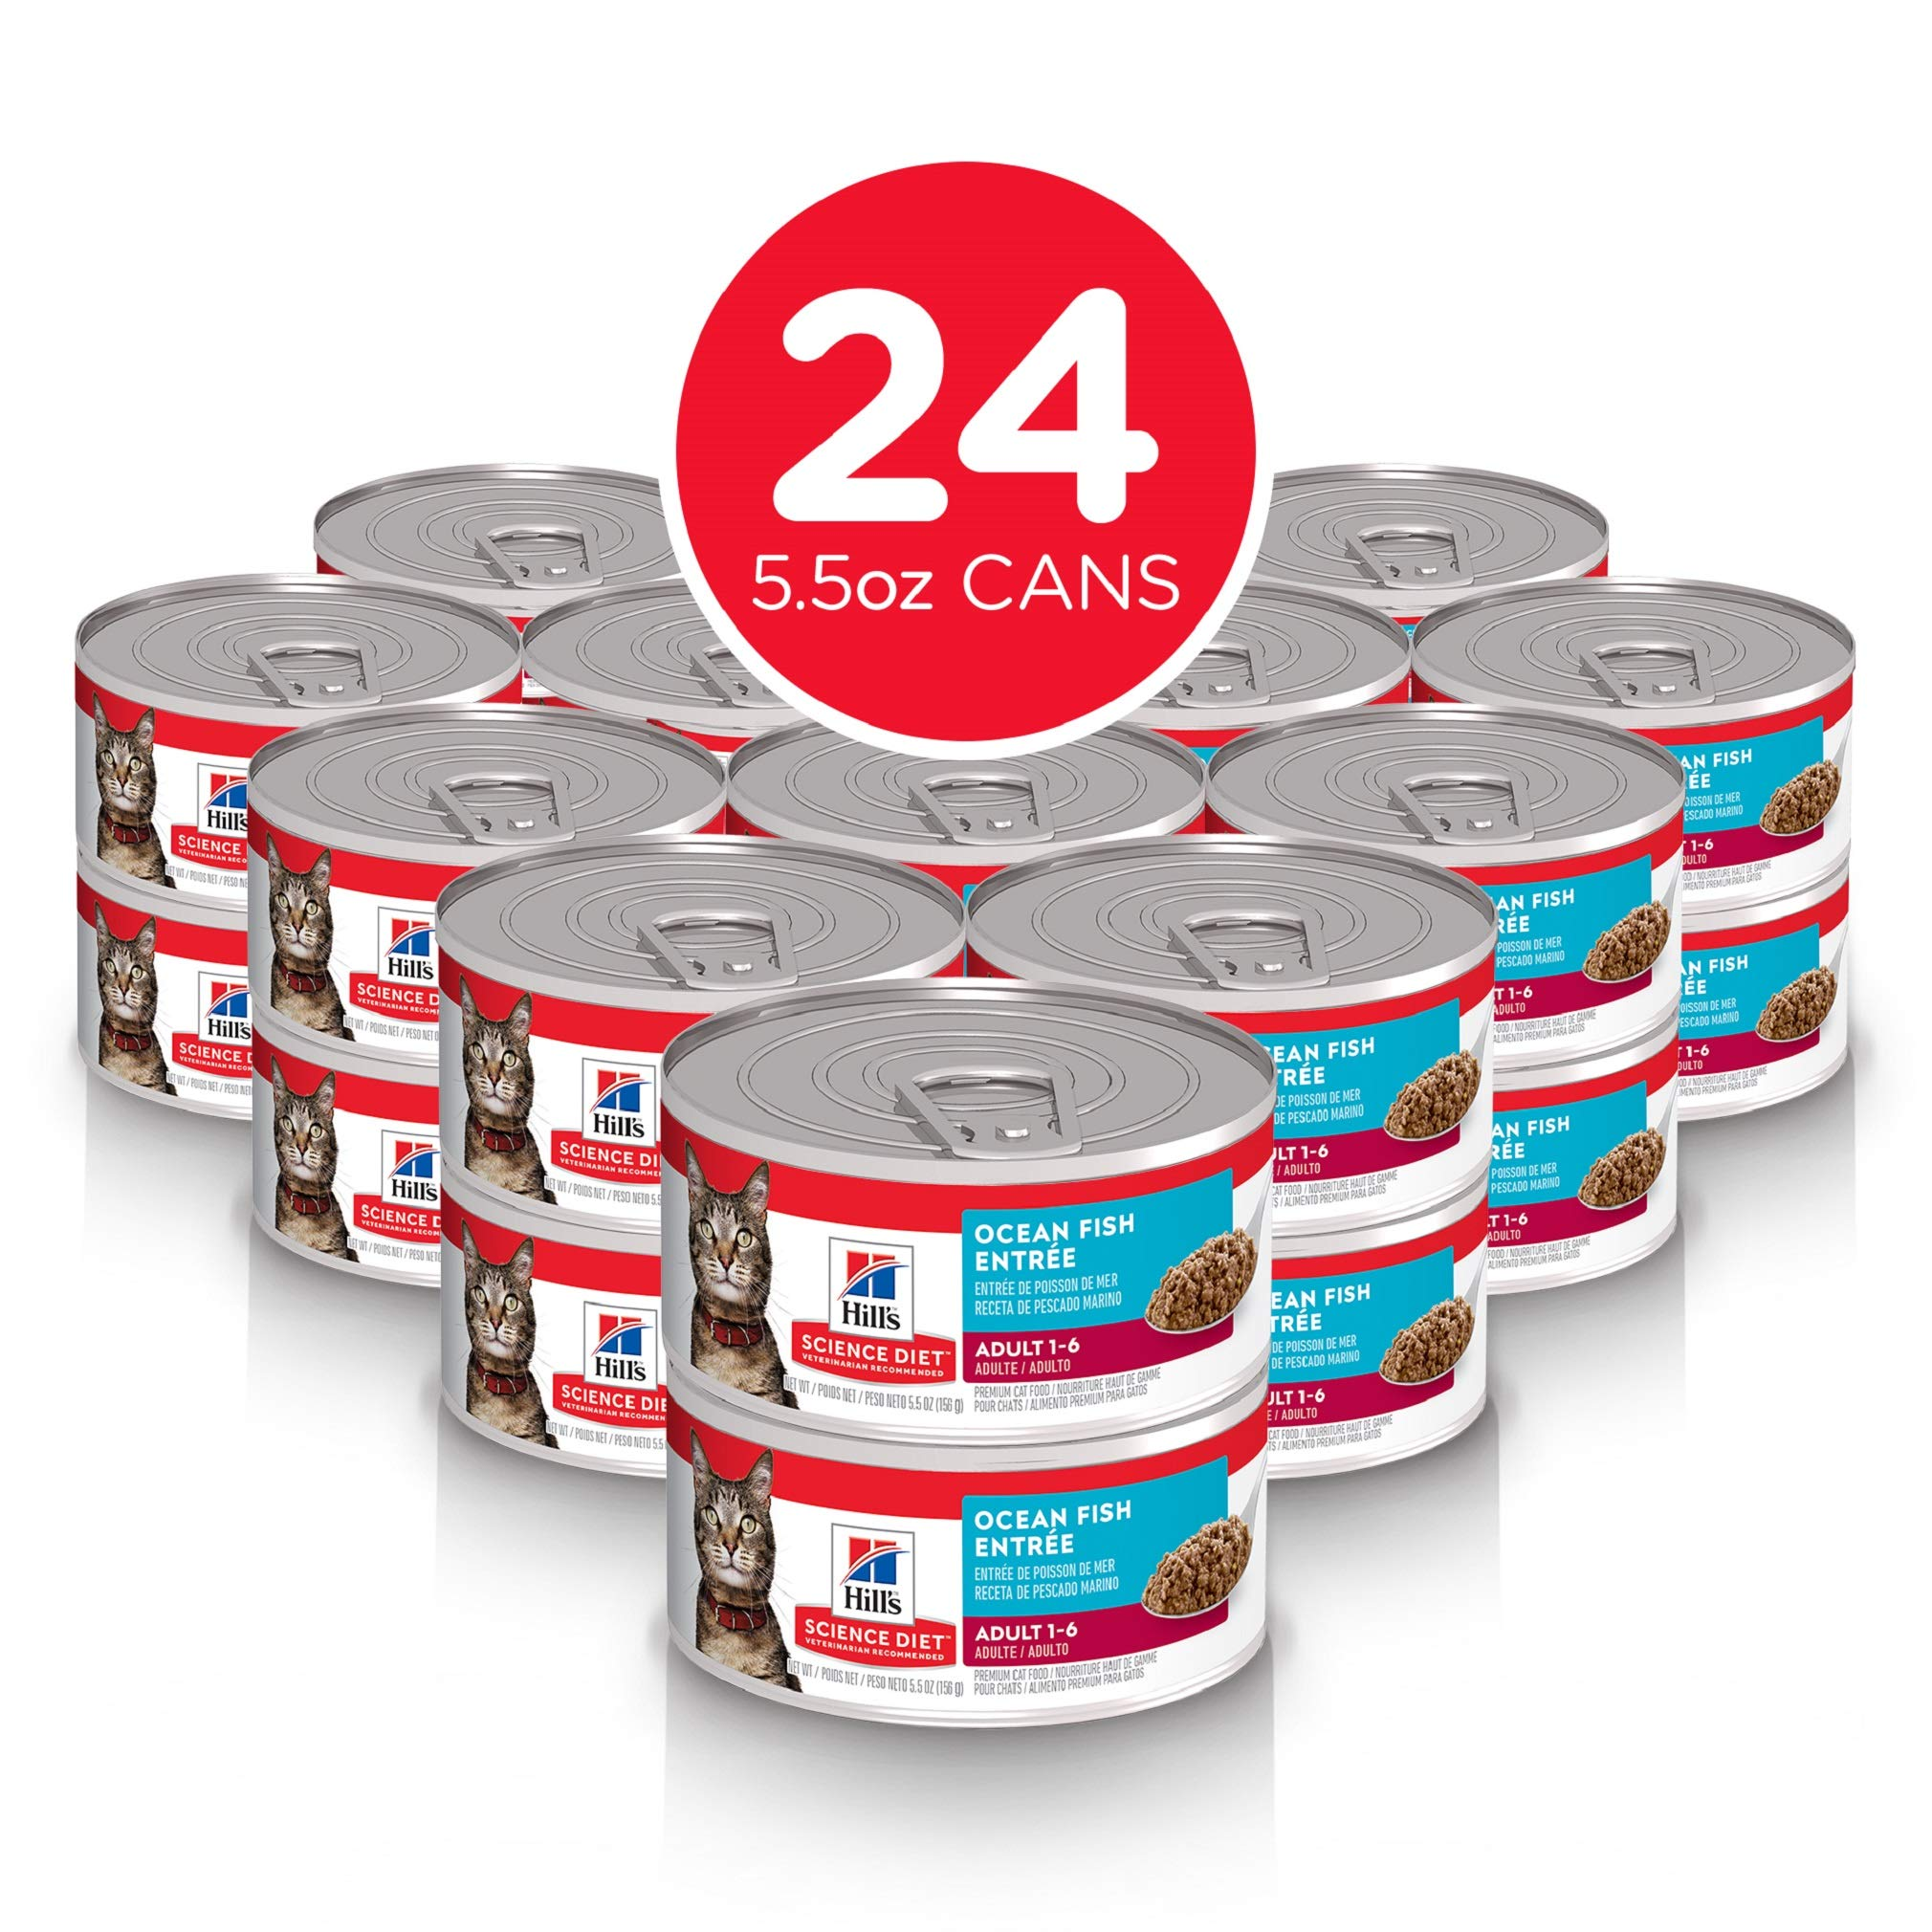 Hill's Science Diet Wet Cat Food, Adult, Tender Tuna Recipe, 5oz Cans, 24 Pack by Hill's Science Diet